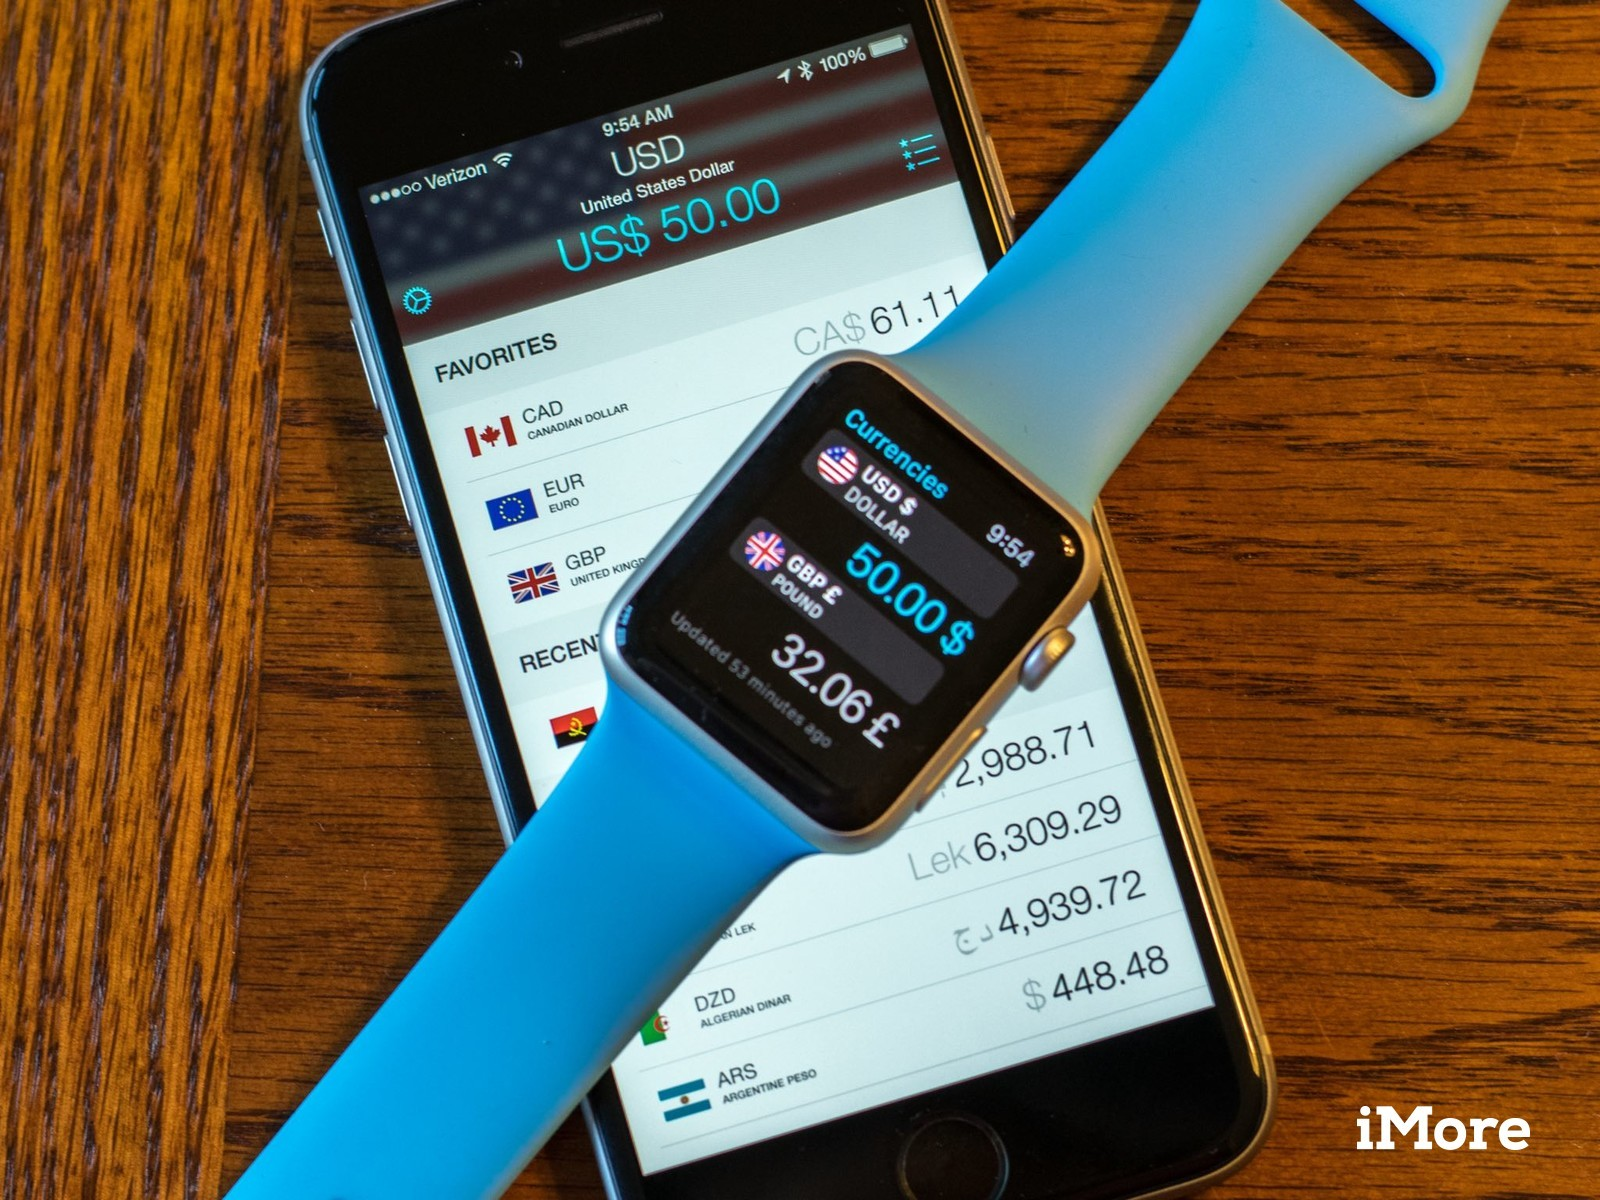 http://www.imore.com/currencies-20-arrives-new-look-more-speed-and-apple-watch-support